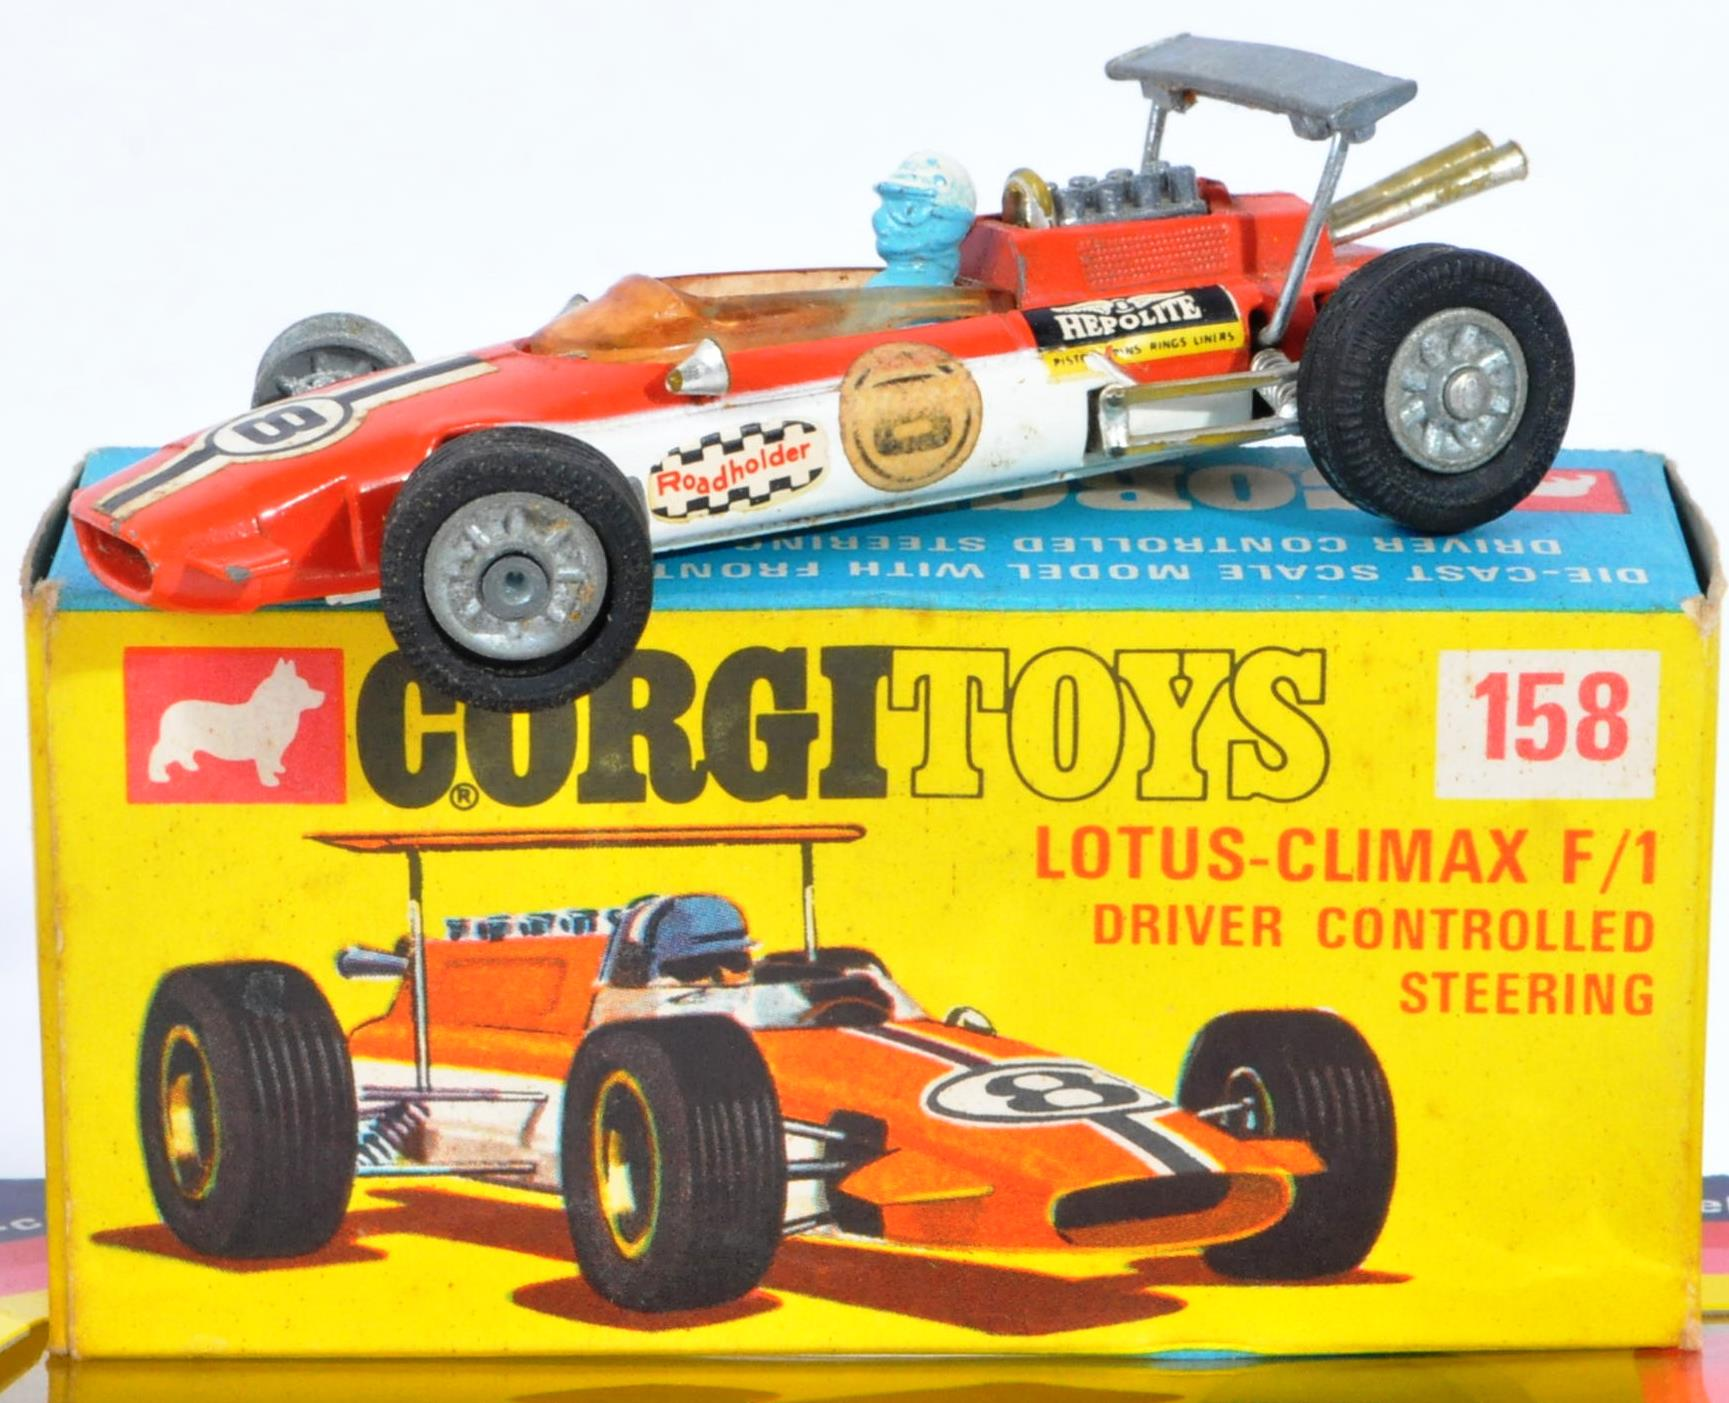 COLLECTION OF ASSORTED VINTAGE CORGI MADE DIECAST MODELS - Image 4 of 6